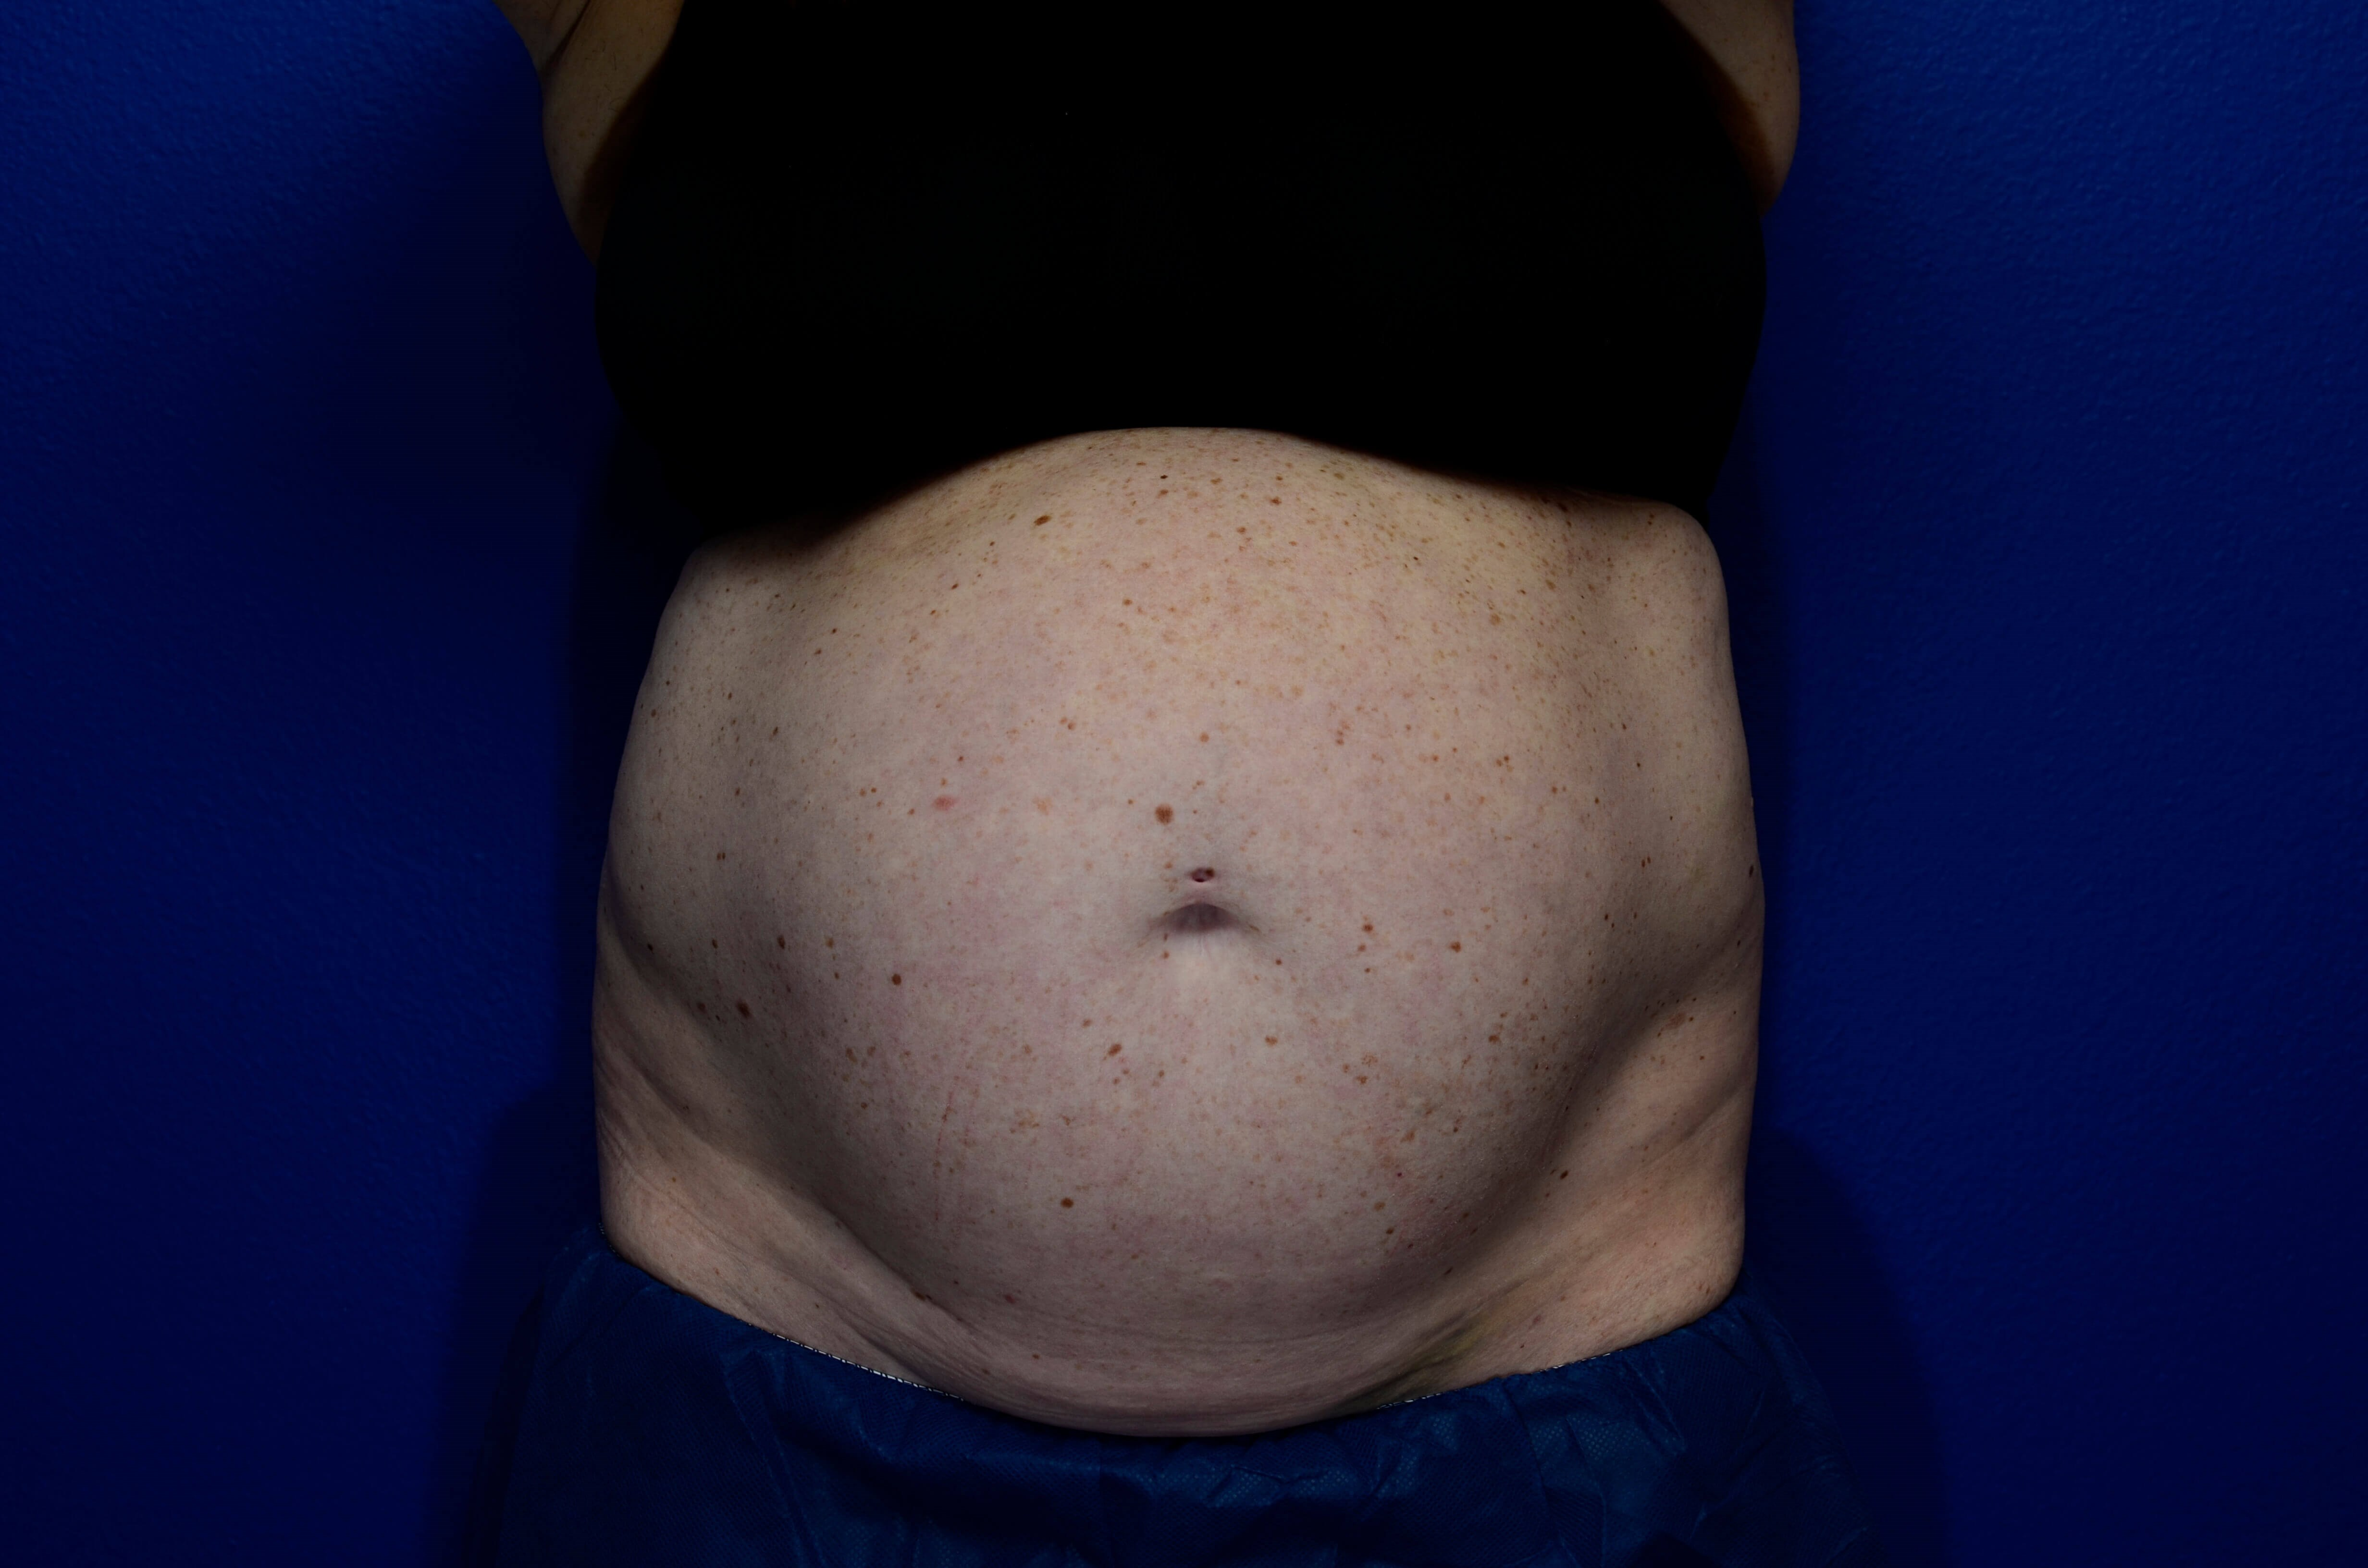 Coolsculpting to Abdomen Before